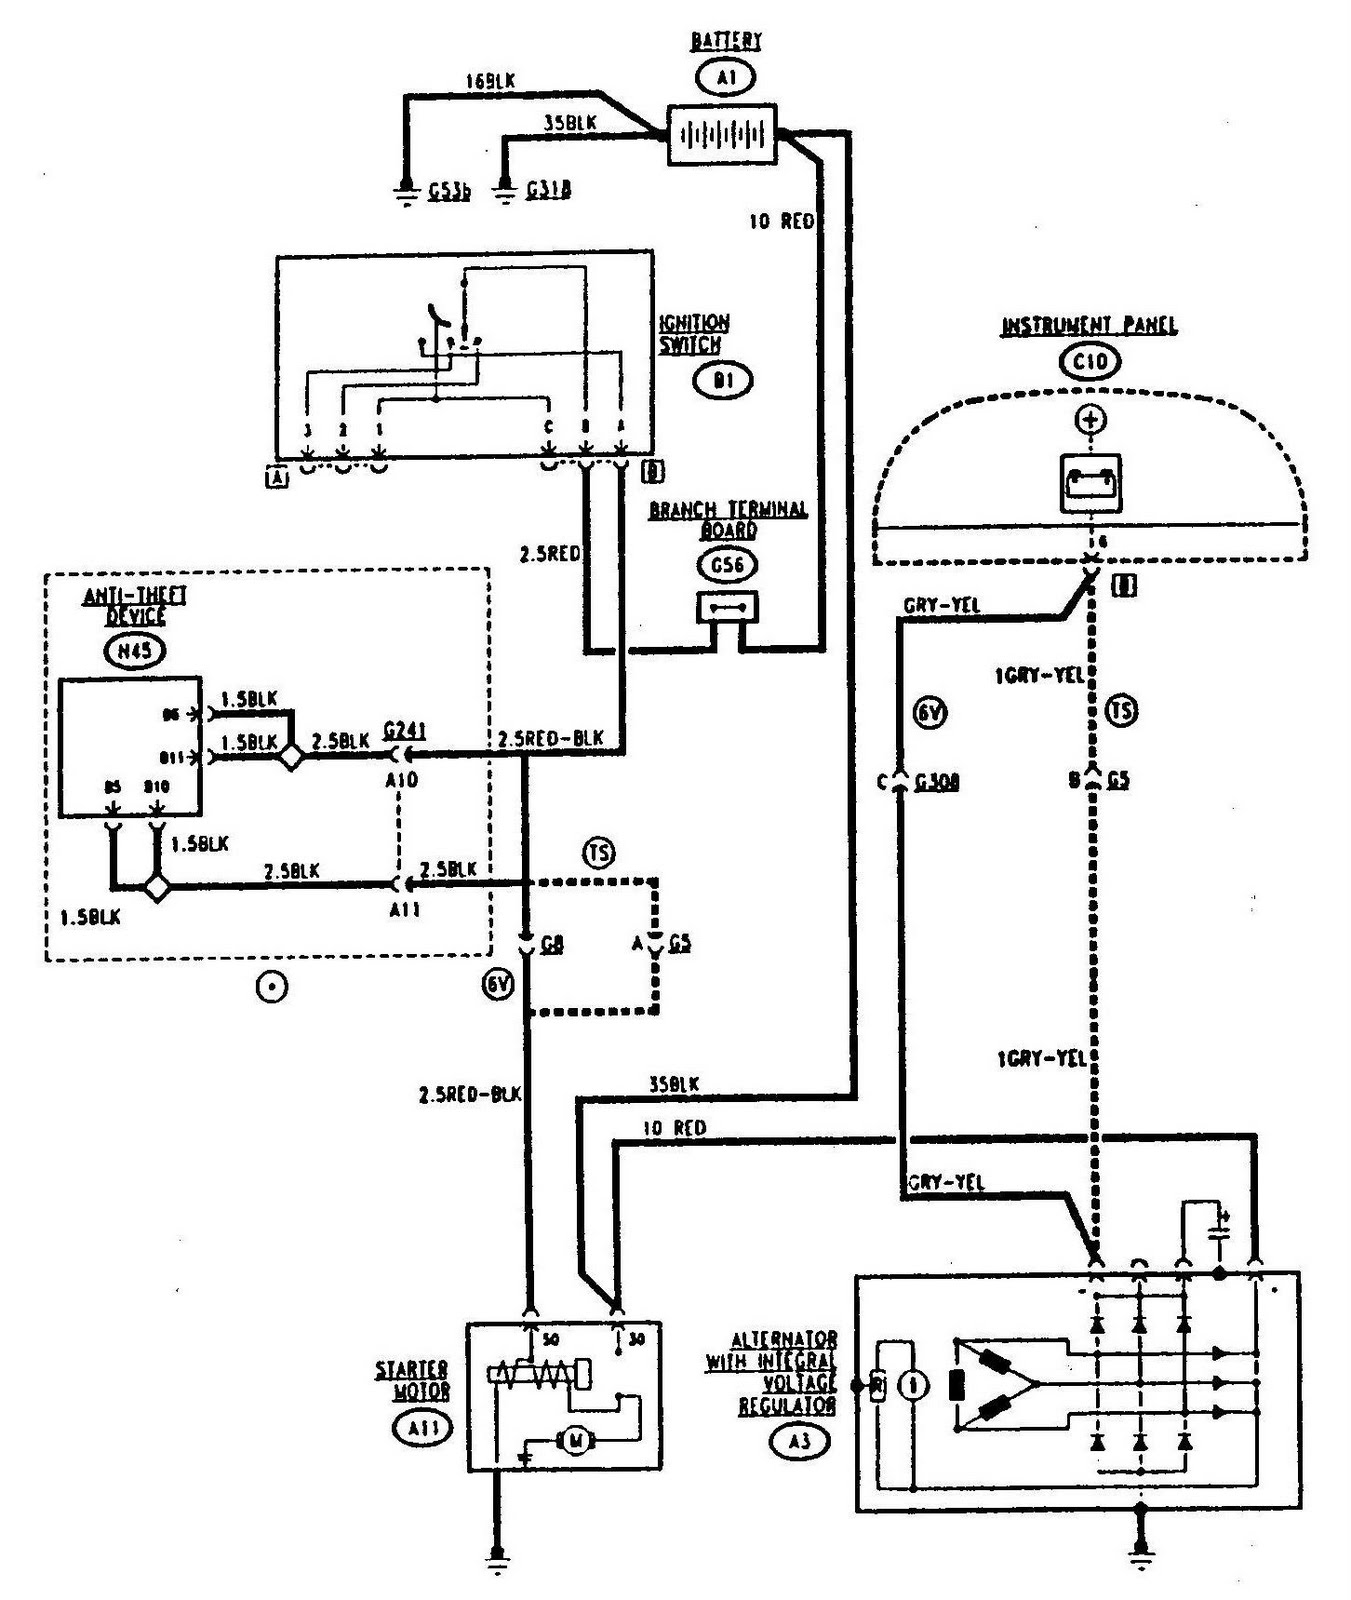 Alfa romeo starting and charging circuit diagram wiringdiagrams blogspot  com chevy alternator wiring JPG 1351x1600 Small